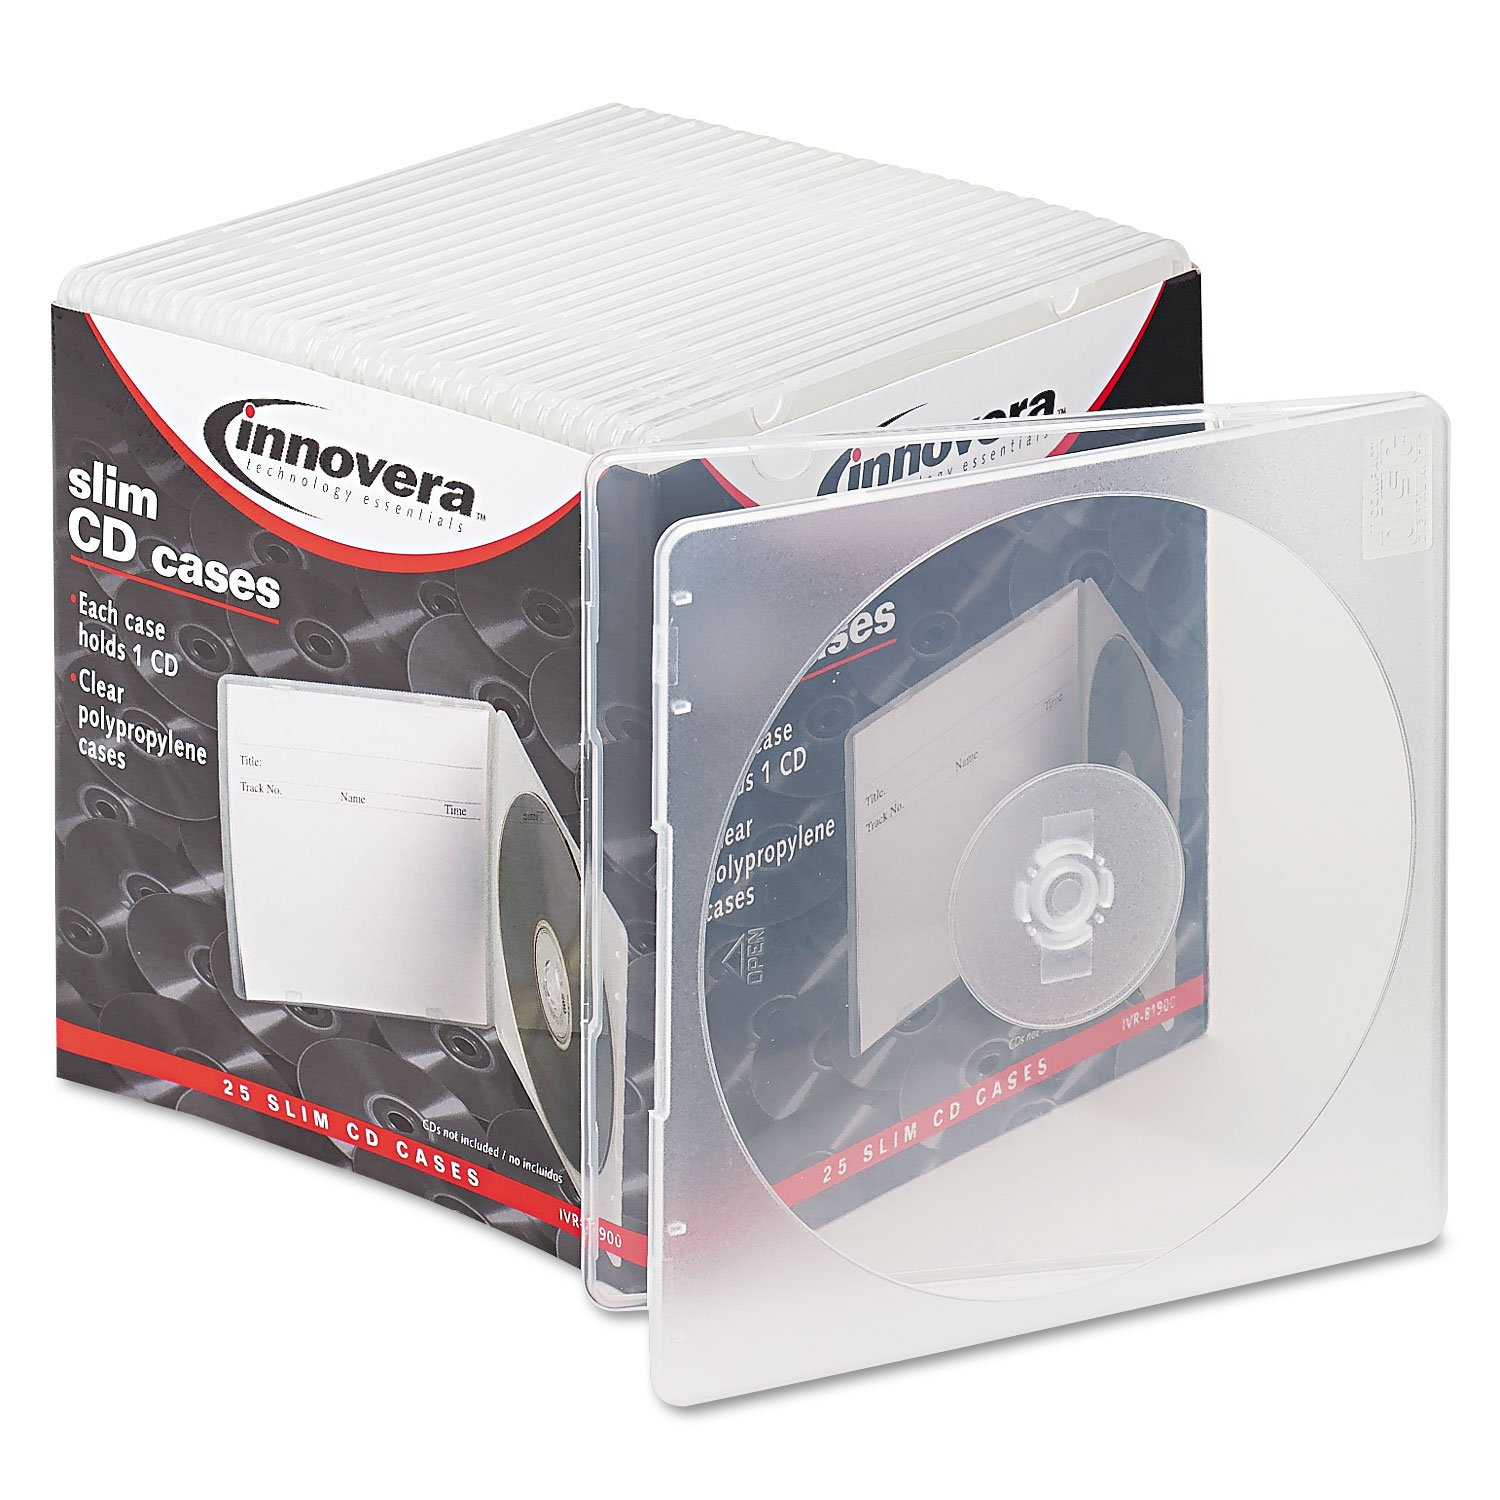 IVR81900 - Innovera Slim CD Case